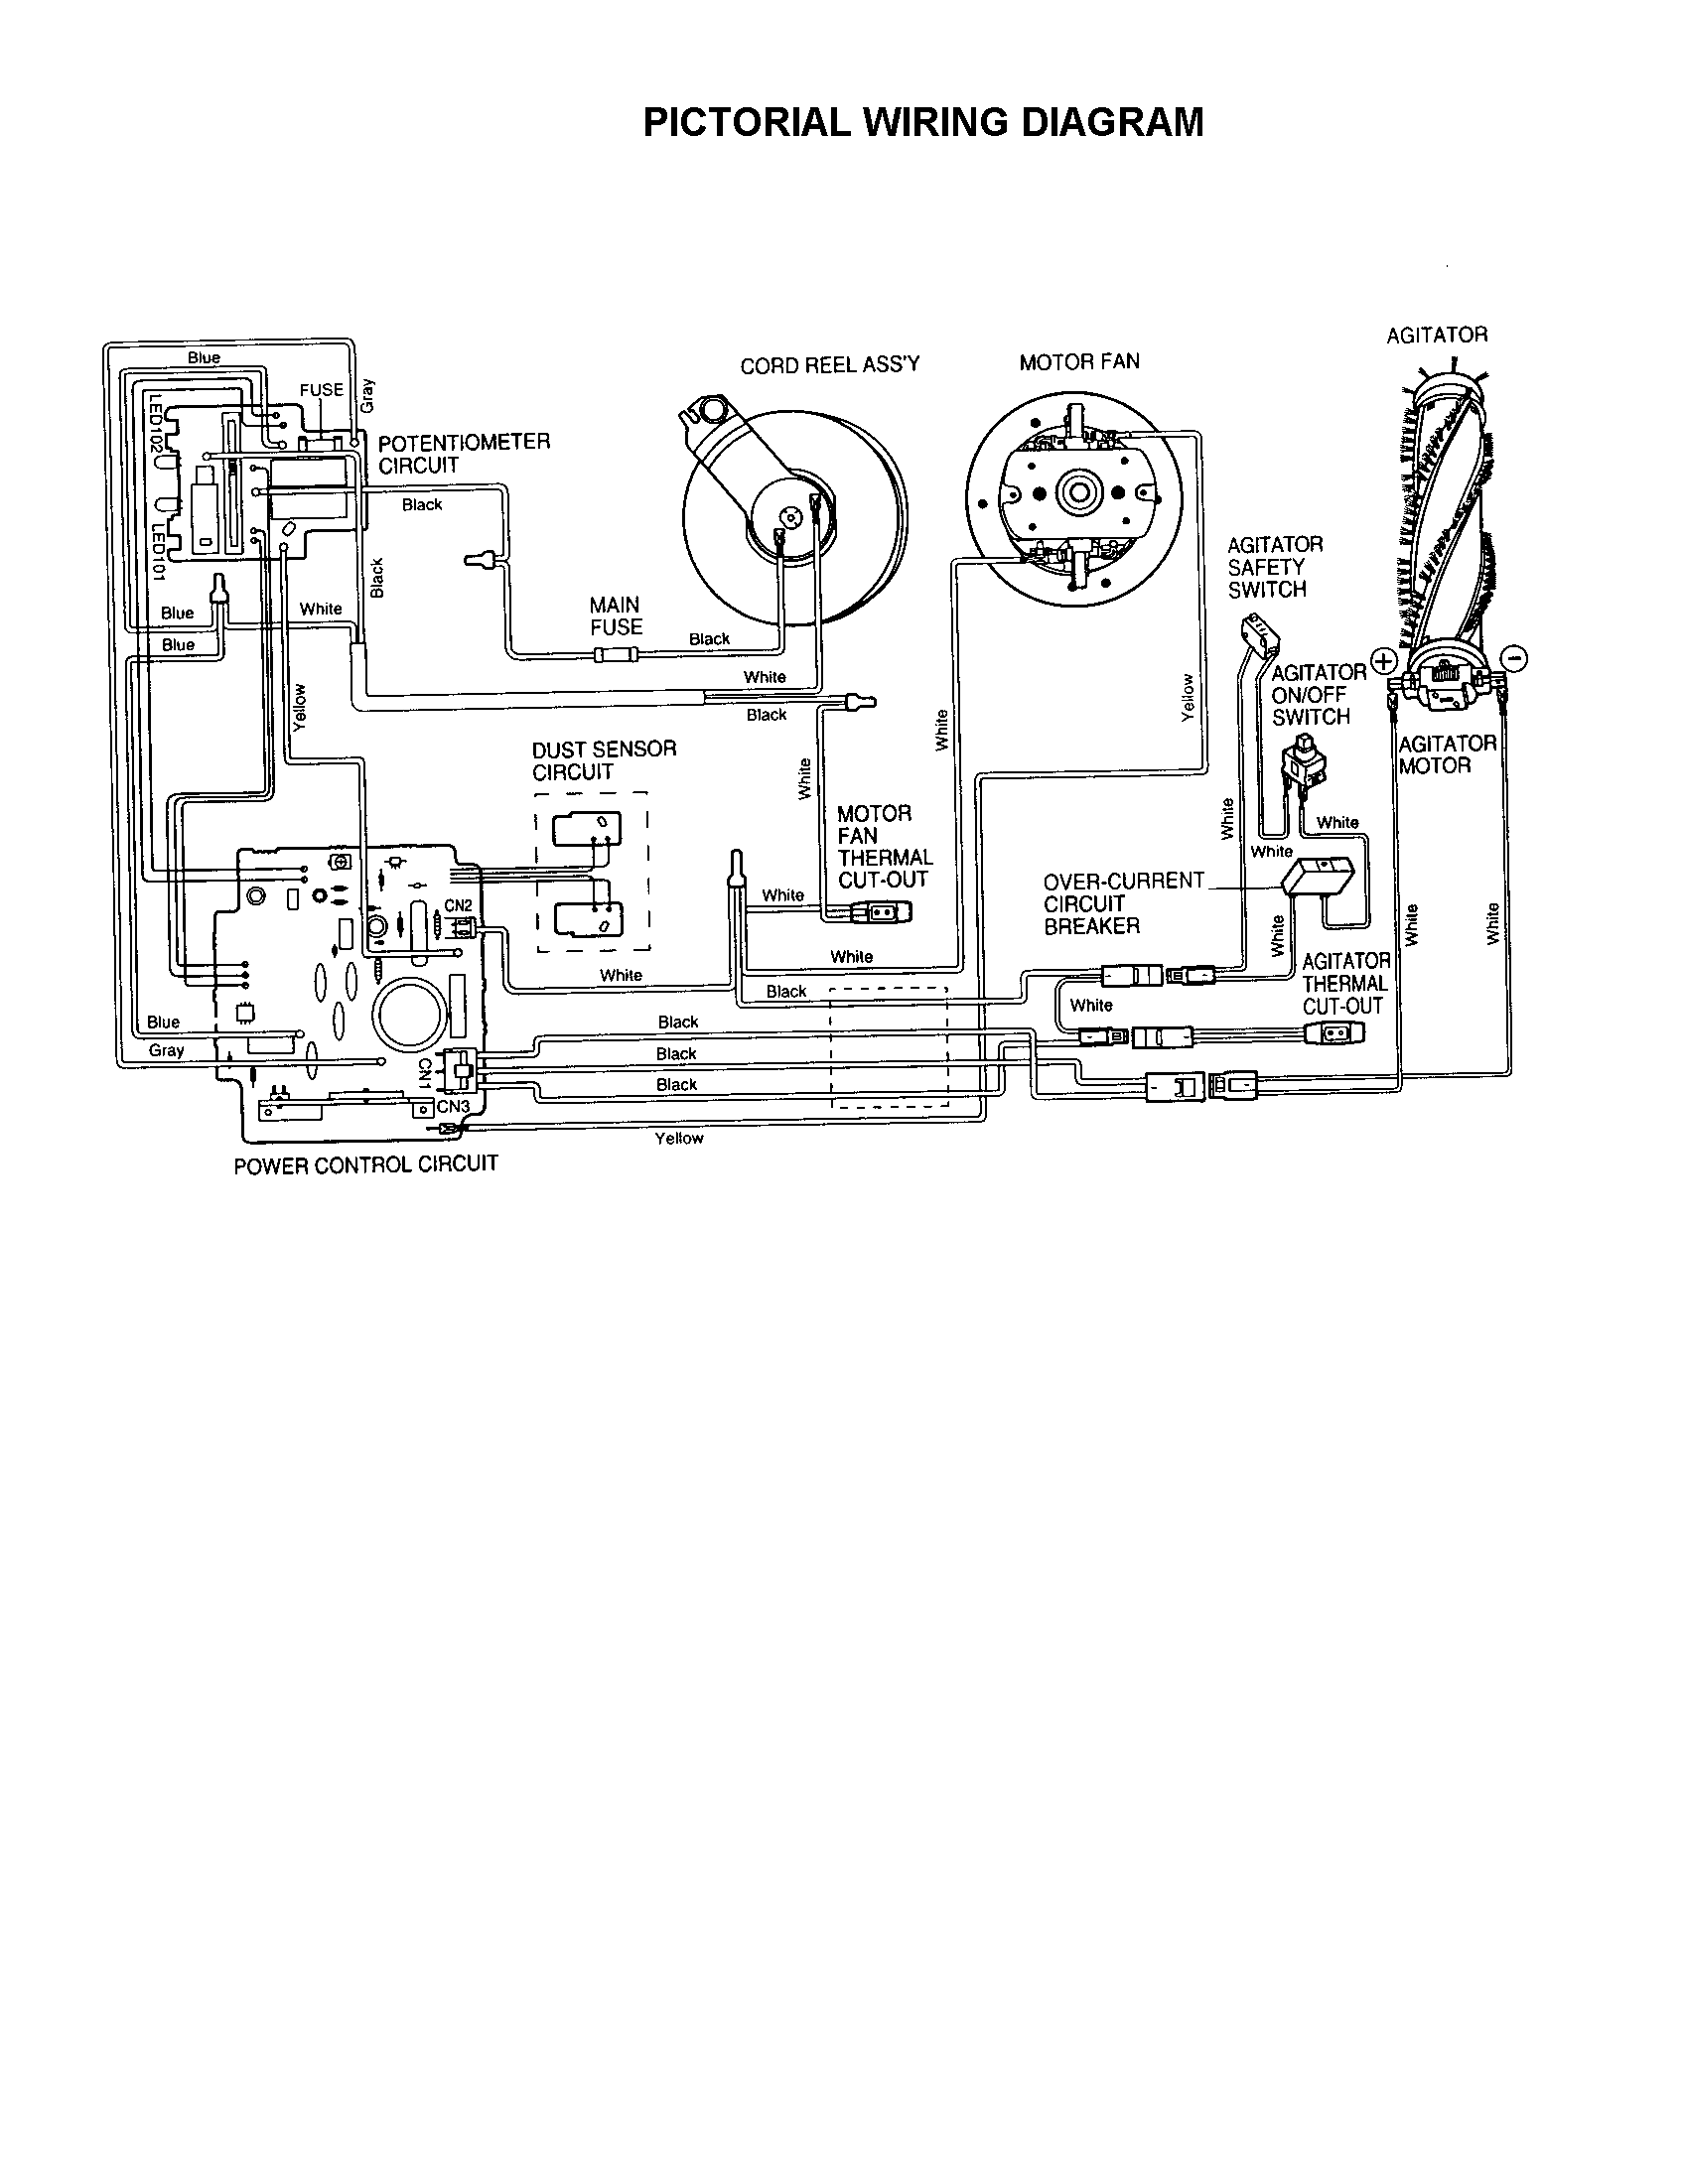 WIRING DIAGRAM Diagram & Parts List for Model MCE583